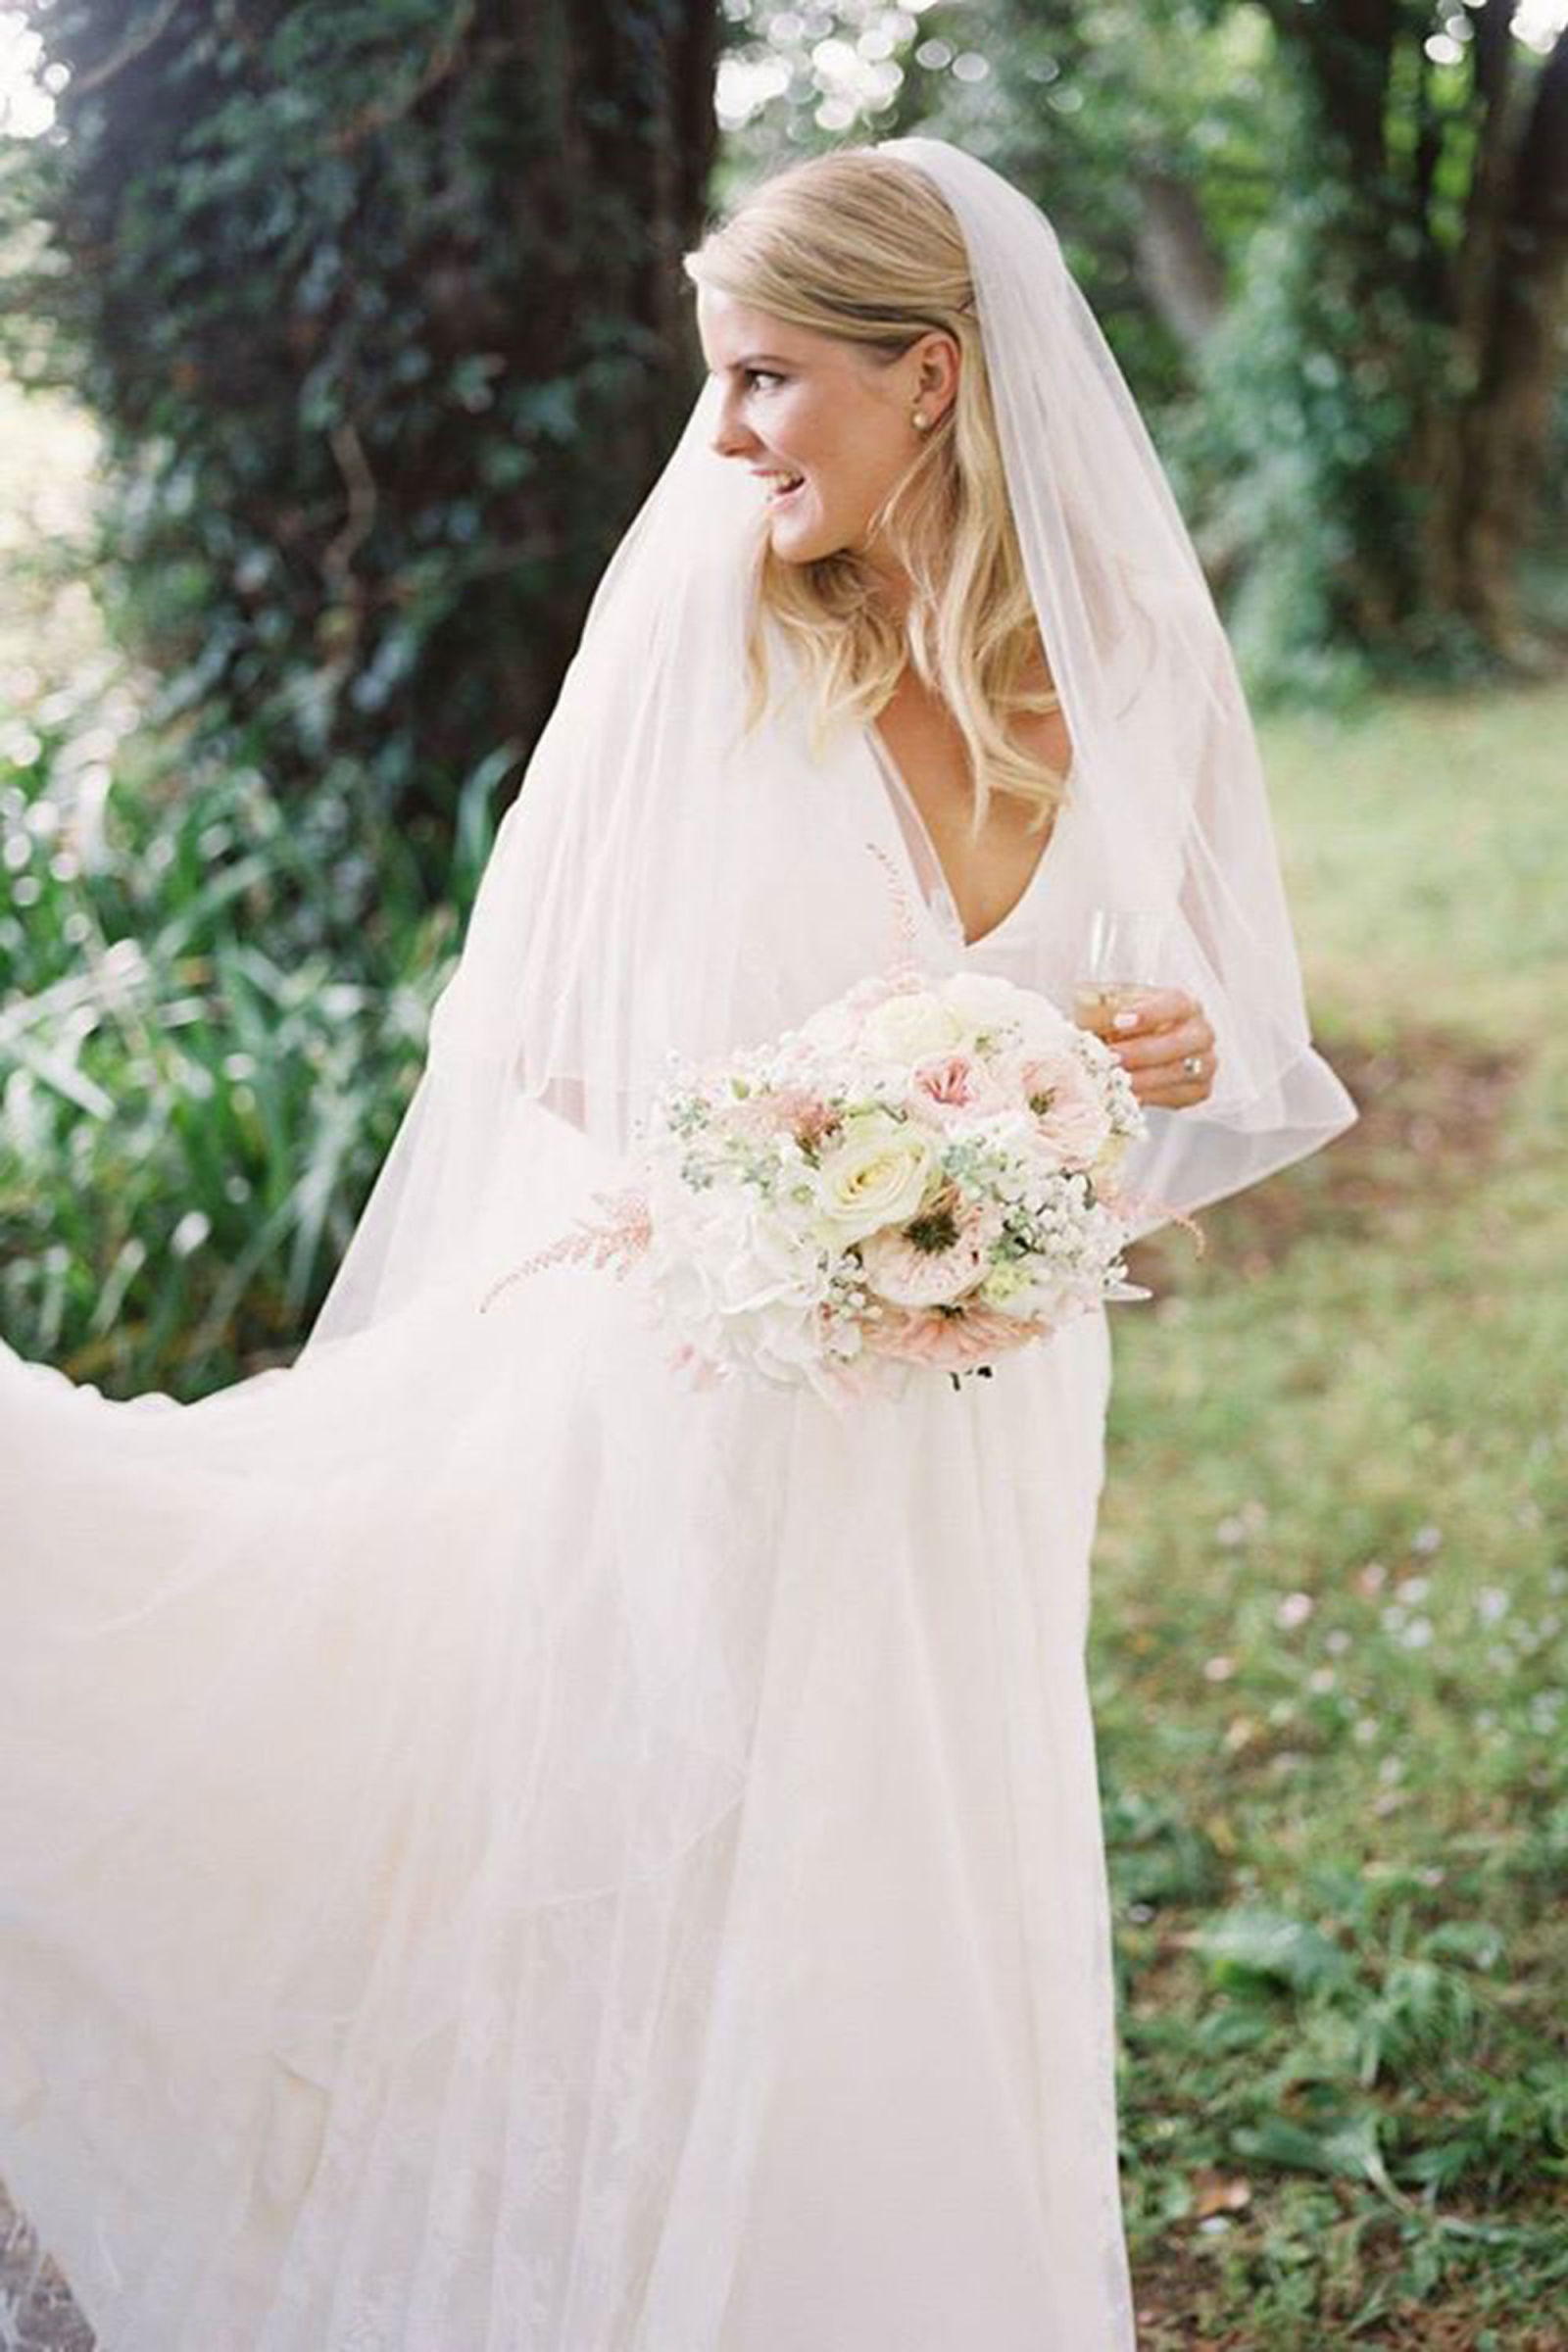 Most Beautiful Brides All Time